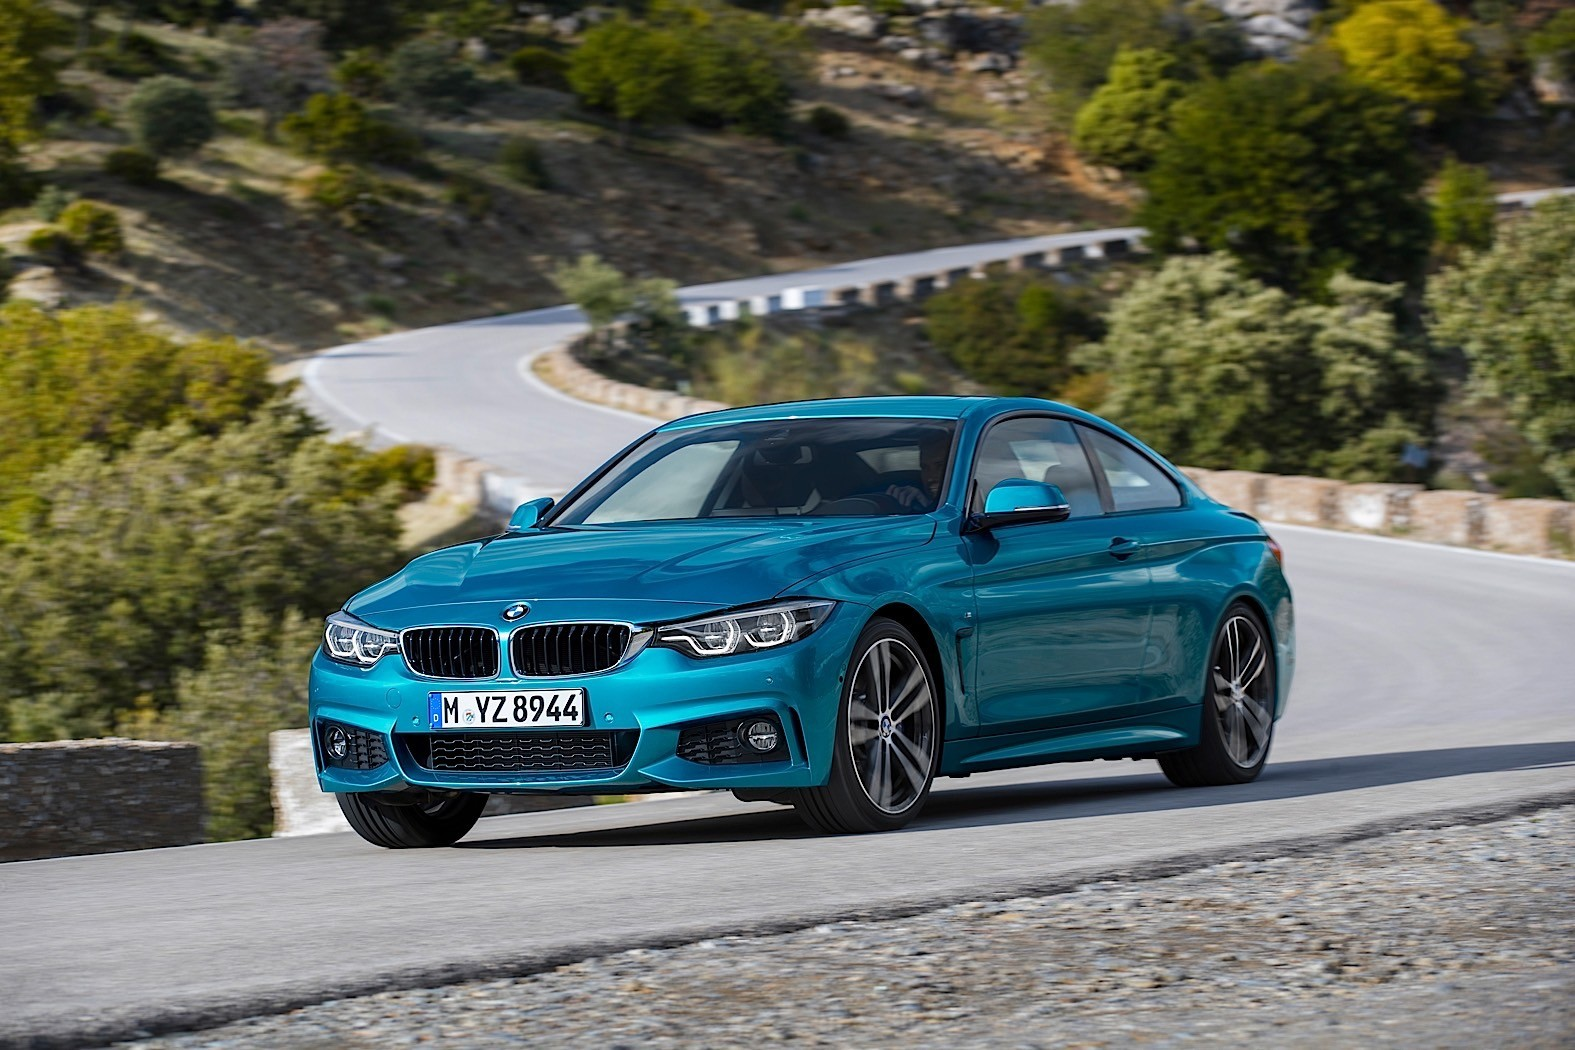 2000 BMW 4 Series Convertible Models Recalled for Airbag Problems